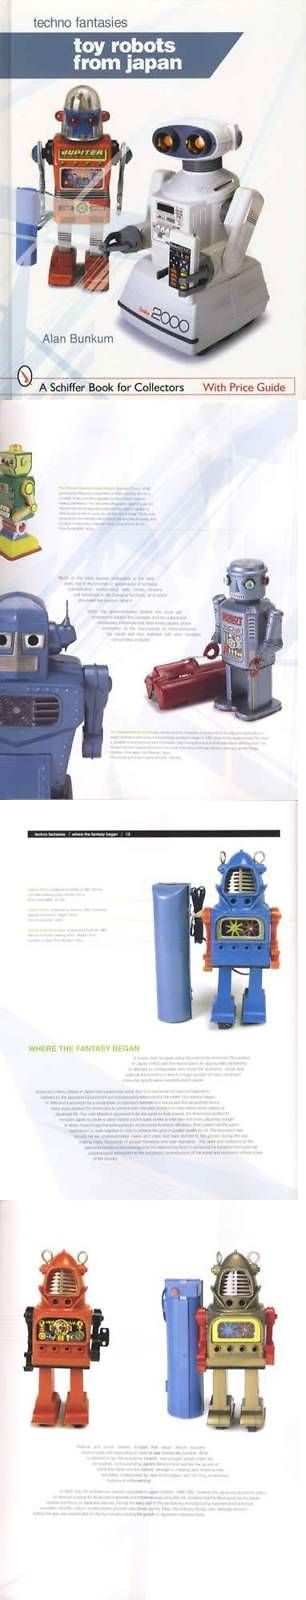 Other Vintage Robot Toys 2662: C1960s-C1980 Vintage Japanese Toy Robots Collector Guide Inc Tomy, Sony And More -> BUY IT NOW ONLY: $39.95 on eBay!